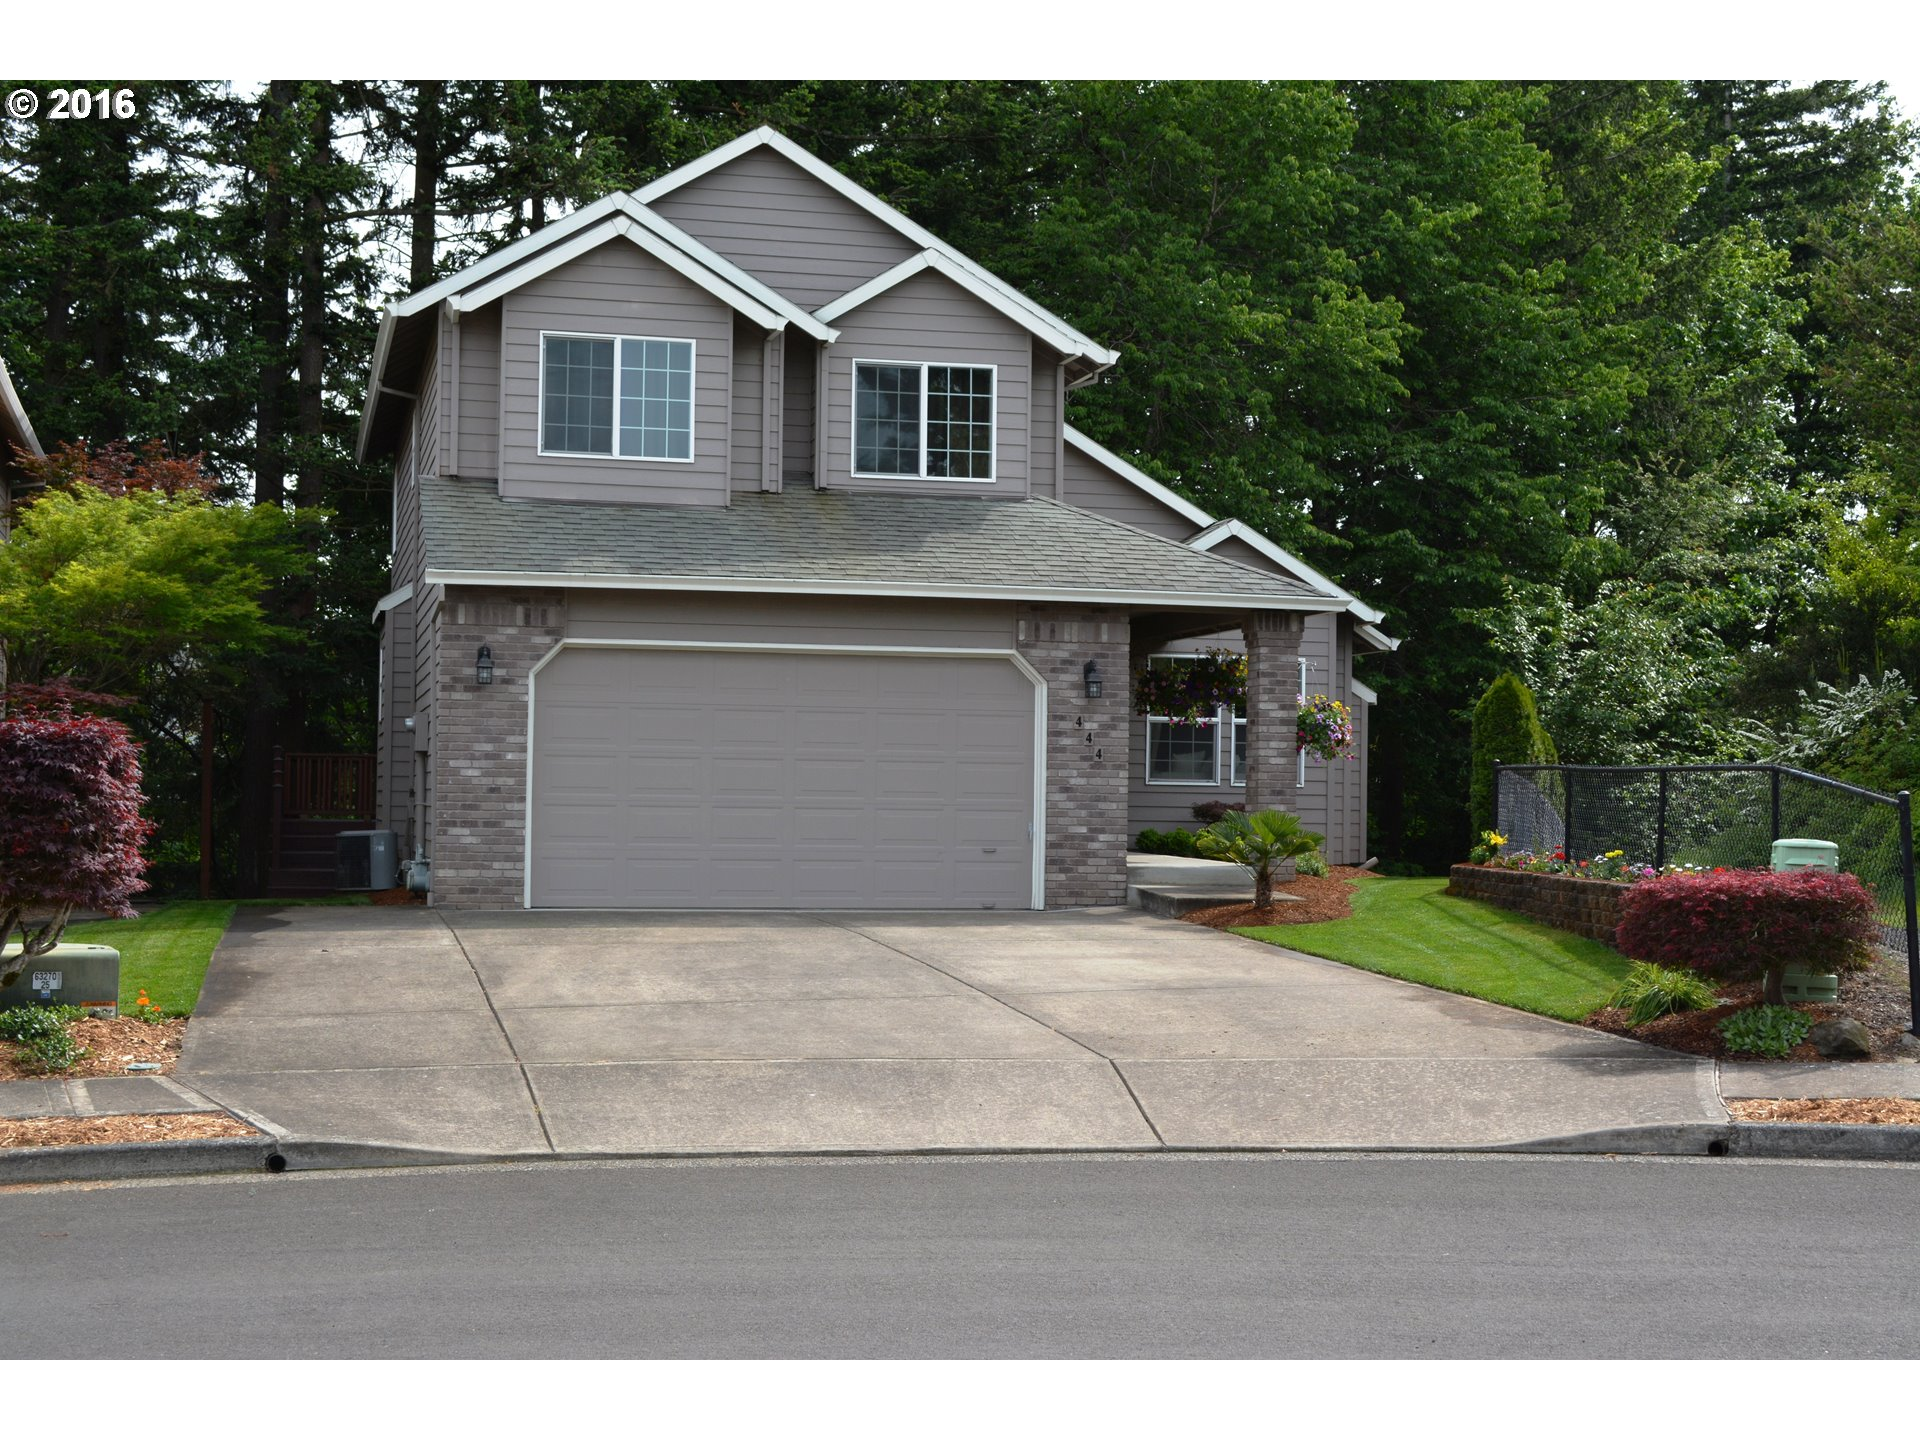 444 SW 25th Cir, Troutdale, OR